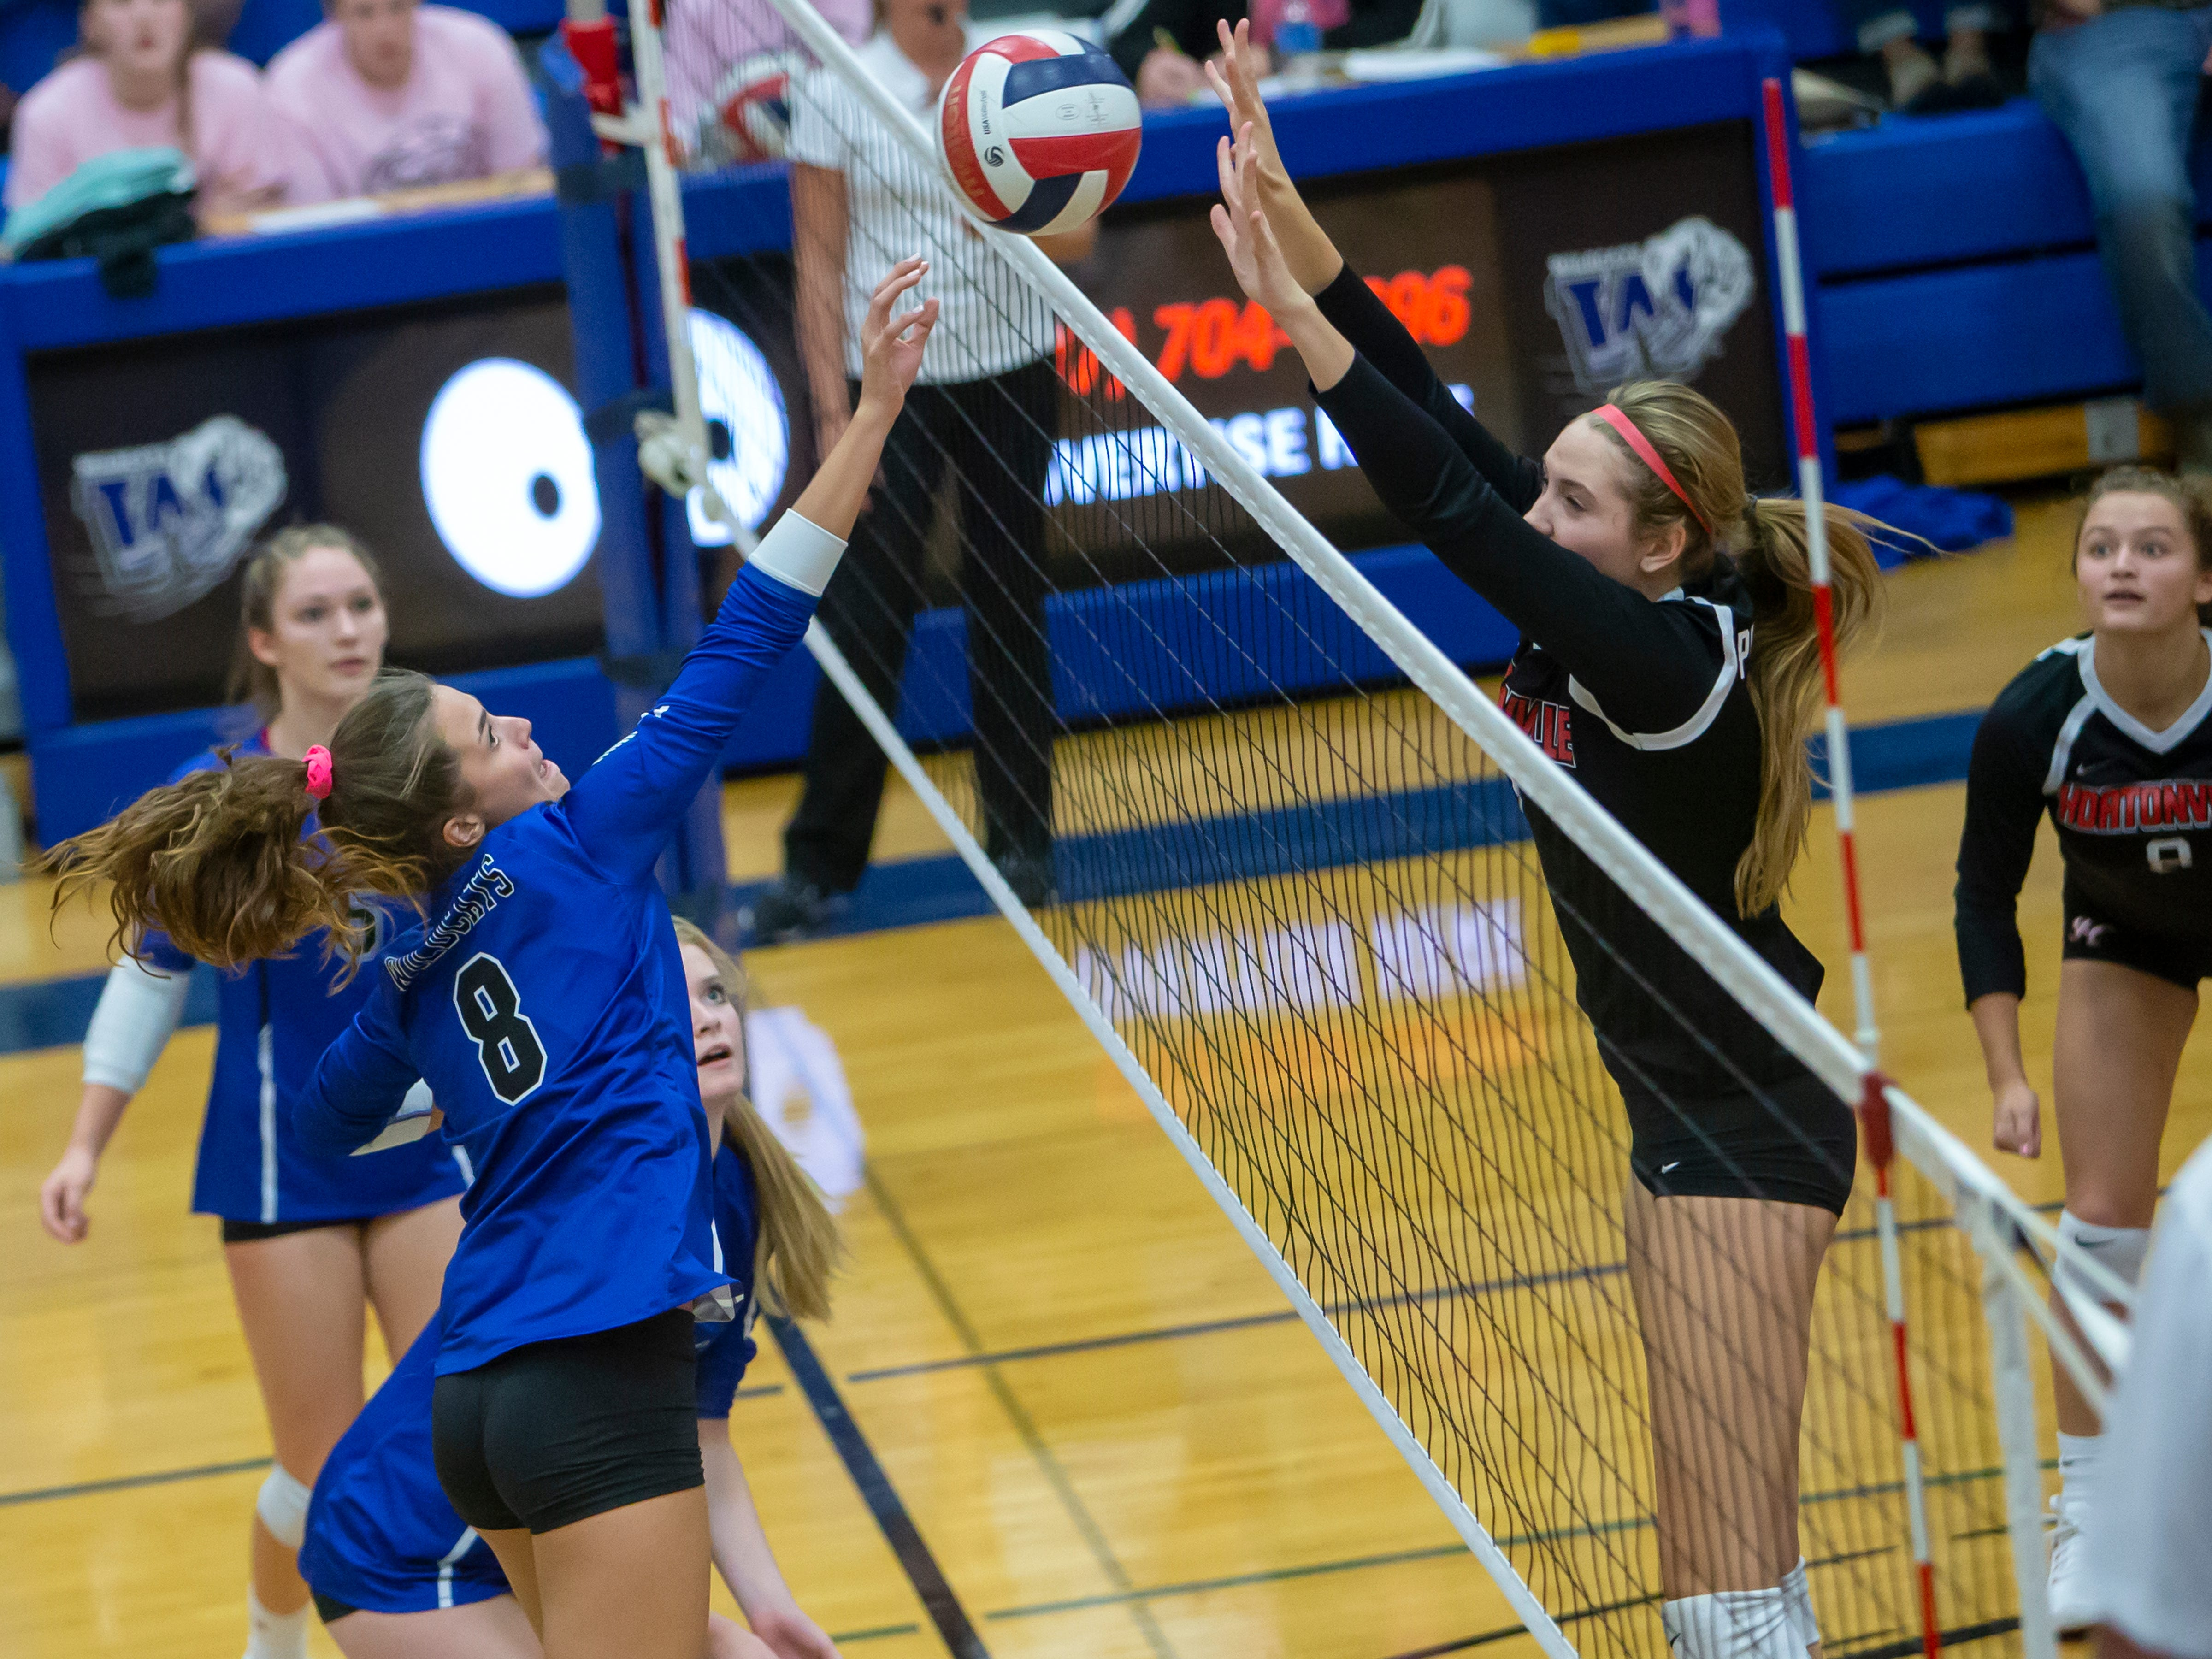 Oshkosh West's Katie Miller volleys the ball over to Hortonville's Adrianne Hagen playing at Oshkosh West High School on Thursday, October 11, 2018.